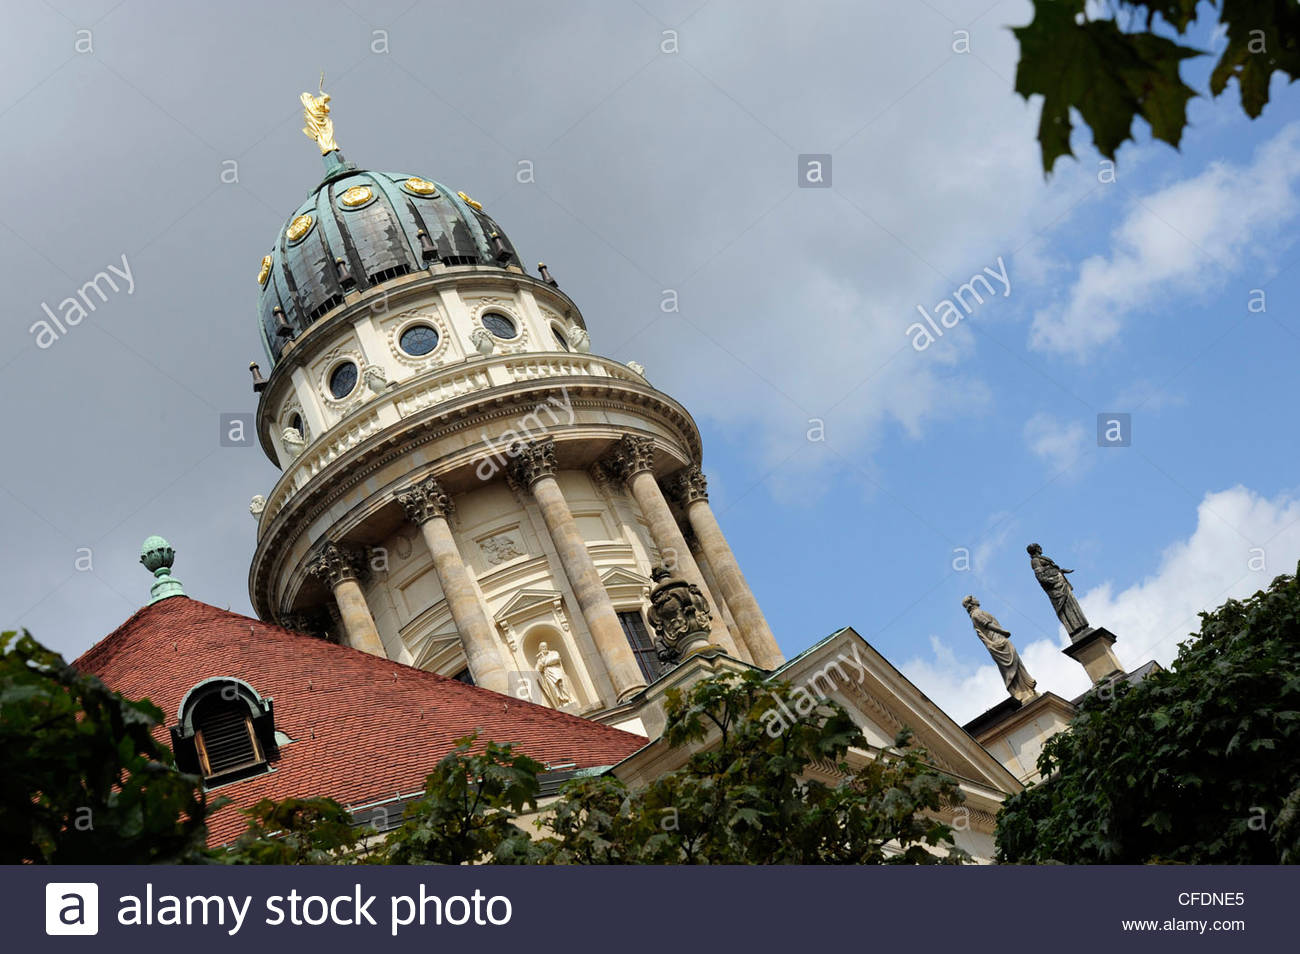 French Cathedral, dome of the church, Gendarmenmarkt square, Berlin Mitte, Germany Stock Photo